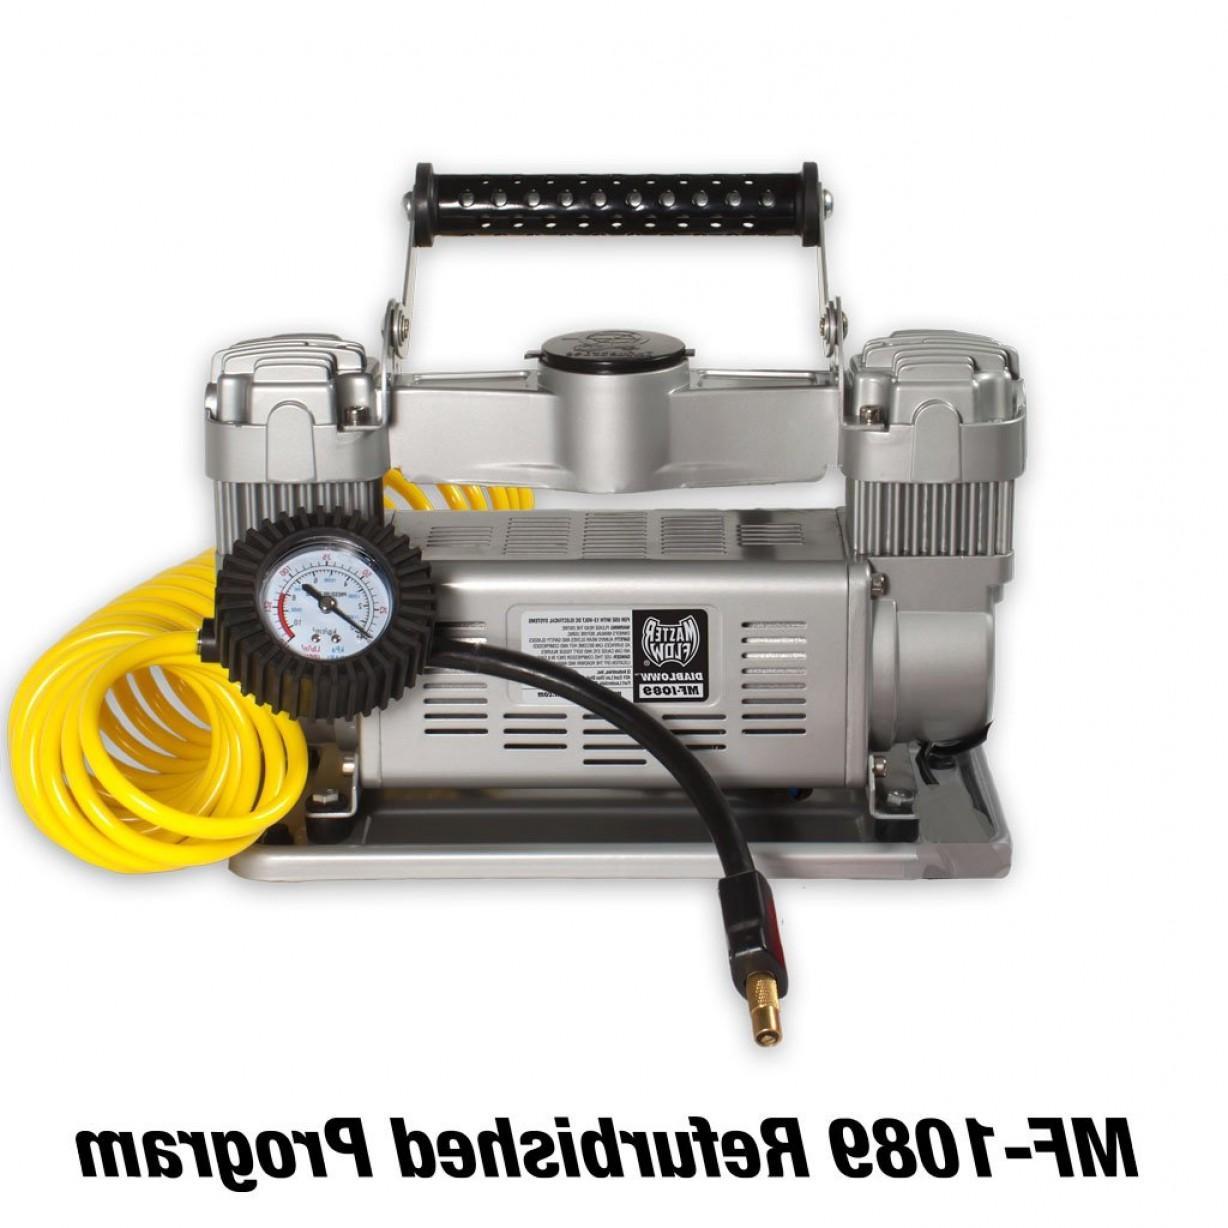 Vector Inflator Compressor Flashlight: Copy Of Portable Twin Cylinder V Air Compressor Diabloww Mf Amps Cubic Inch